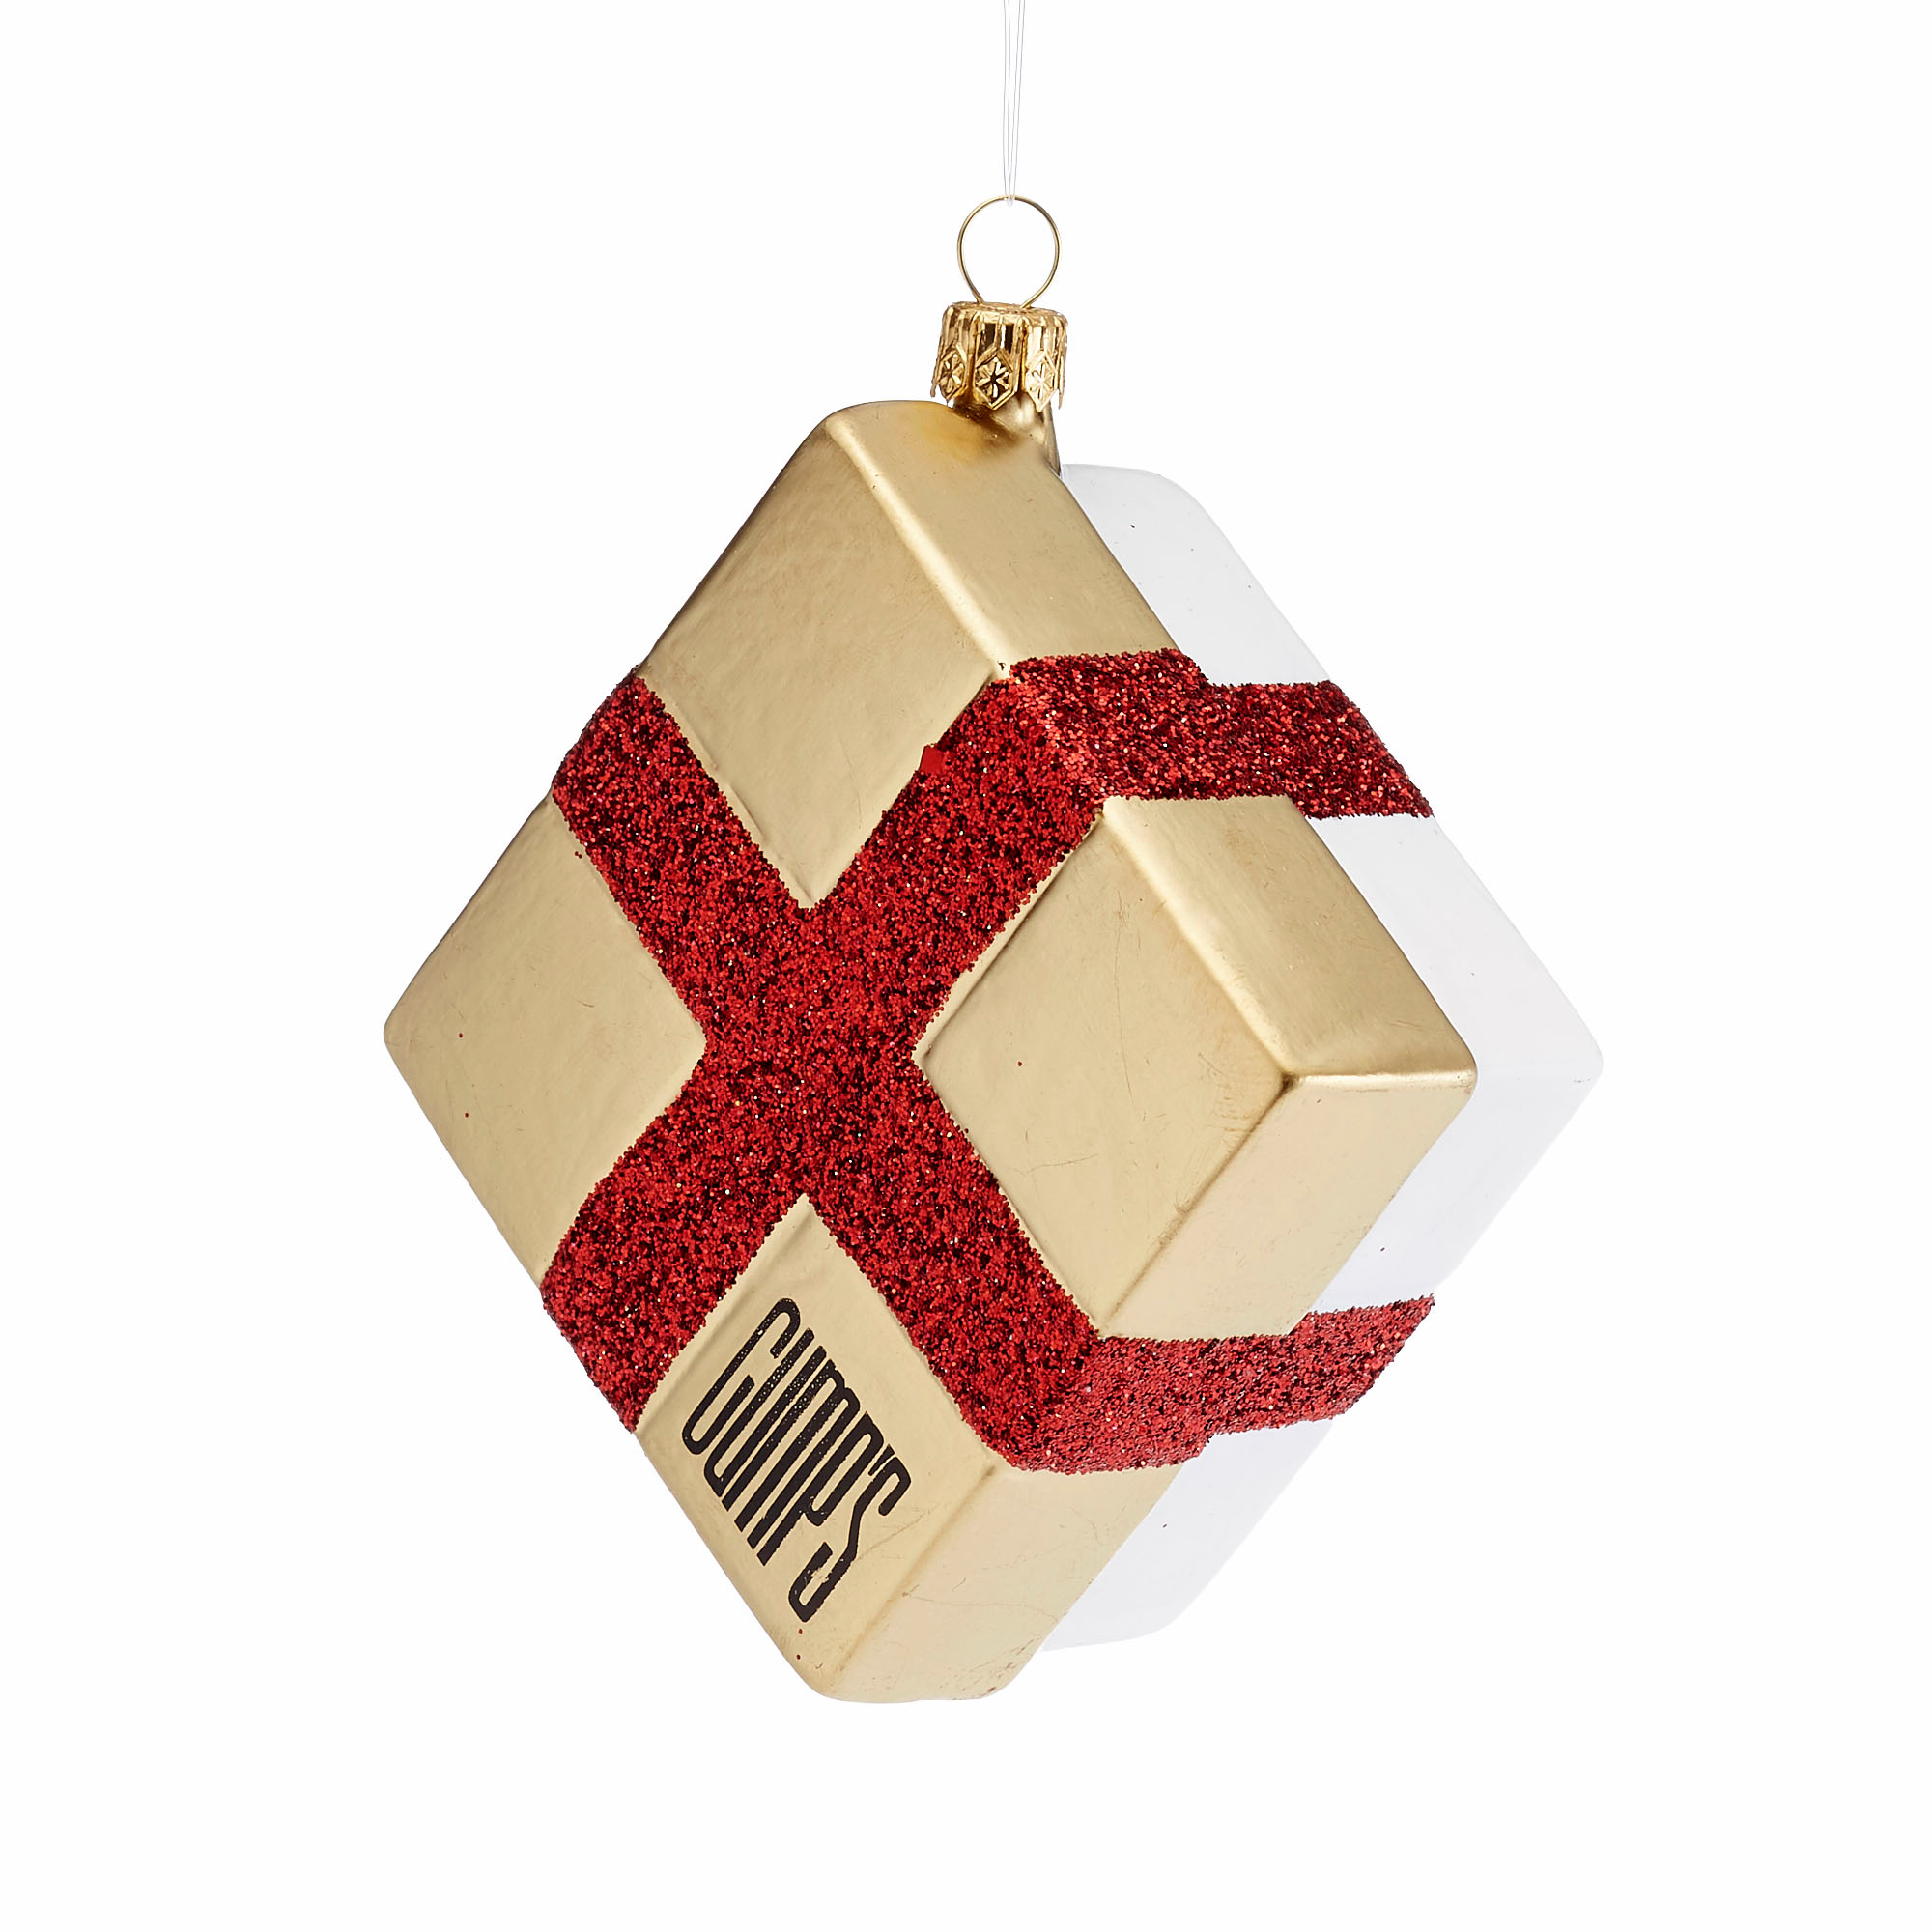 Gump's Gift Box Ornament